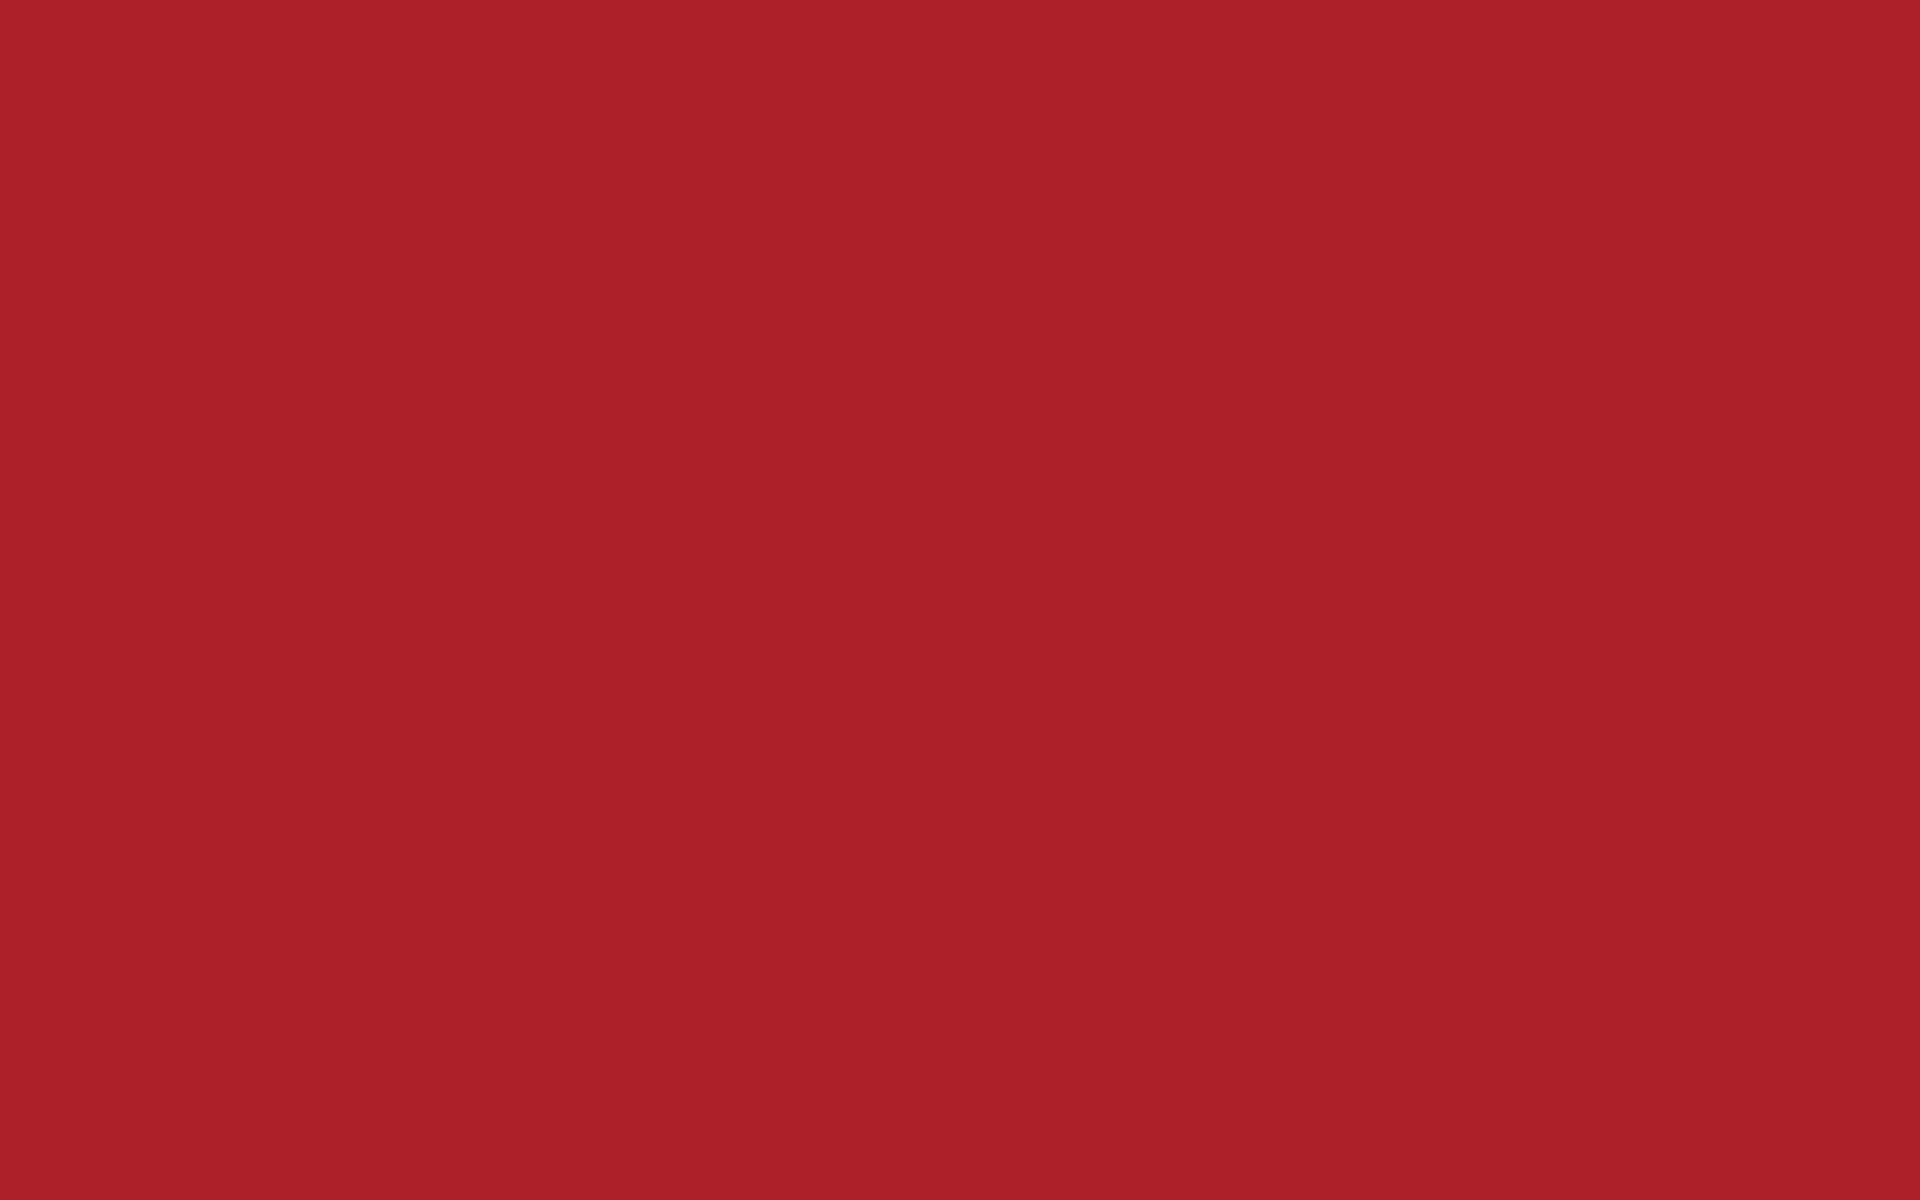 1920x1200 Upsdell Red Solid Color Background